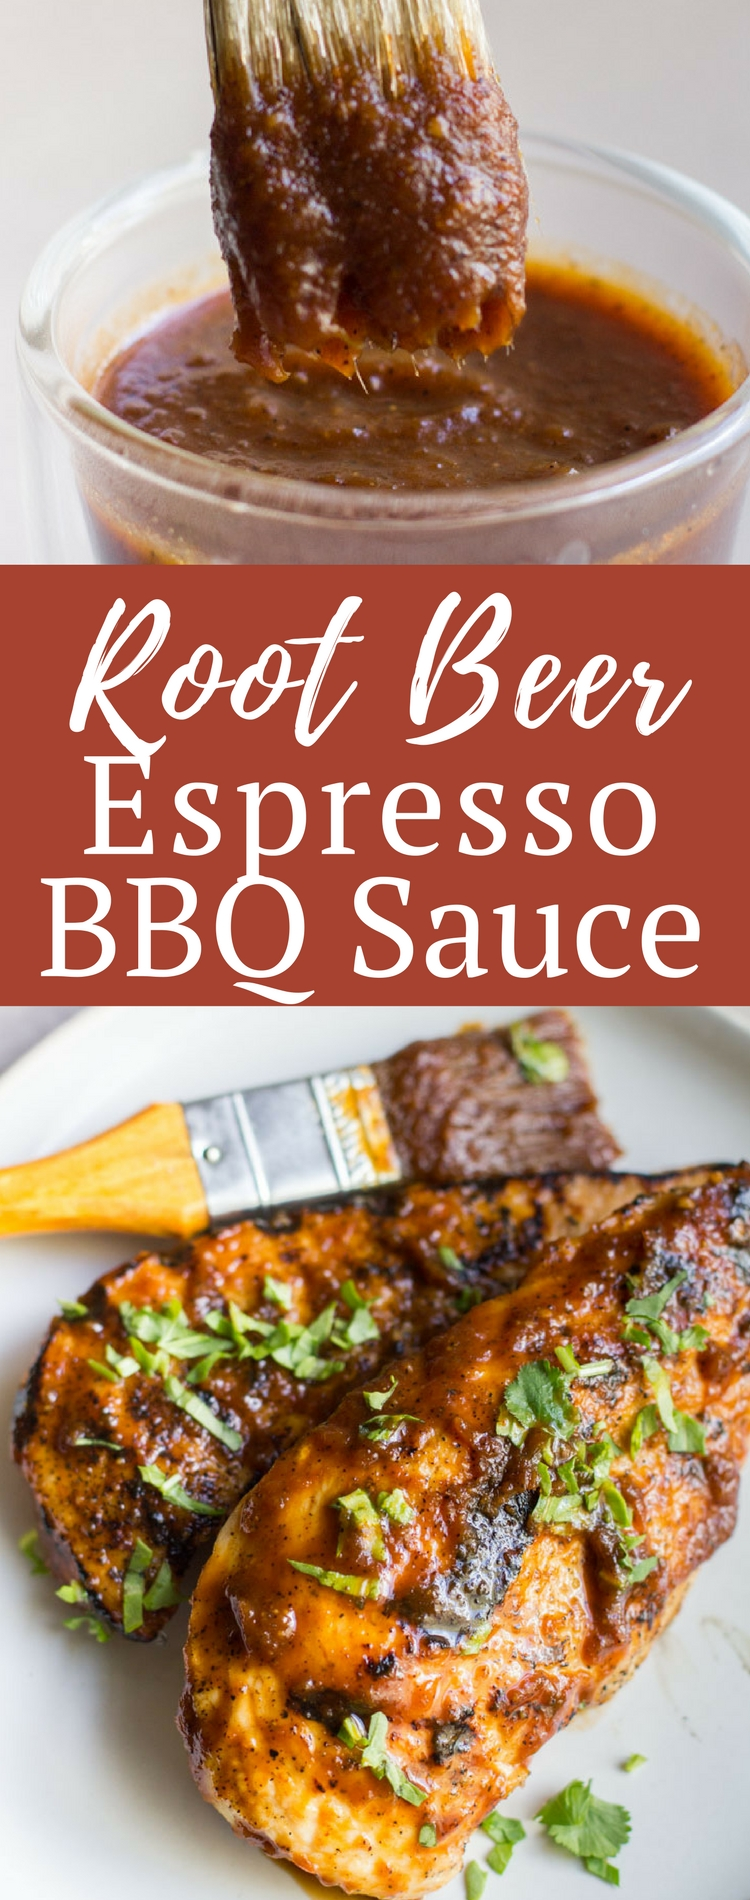 This Root Beer Espresso BBQ Sauce is the sauce you never knew you needed, but you'll never go without again. It has such a great, full bodied flavor full of sweet and spice - it's exactly the kind of sauce your next summer barbecue needs.